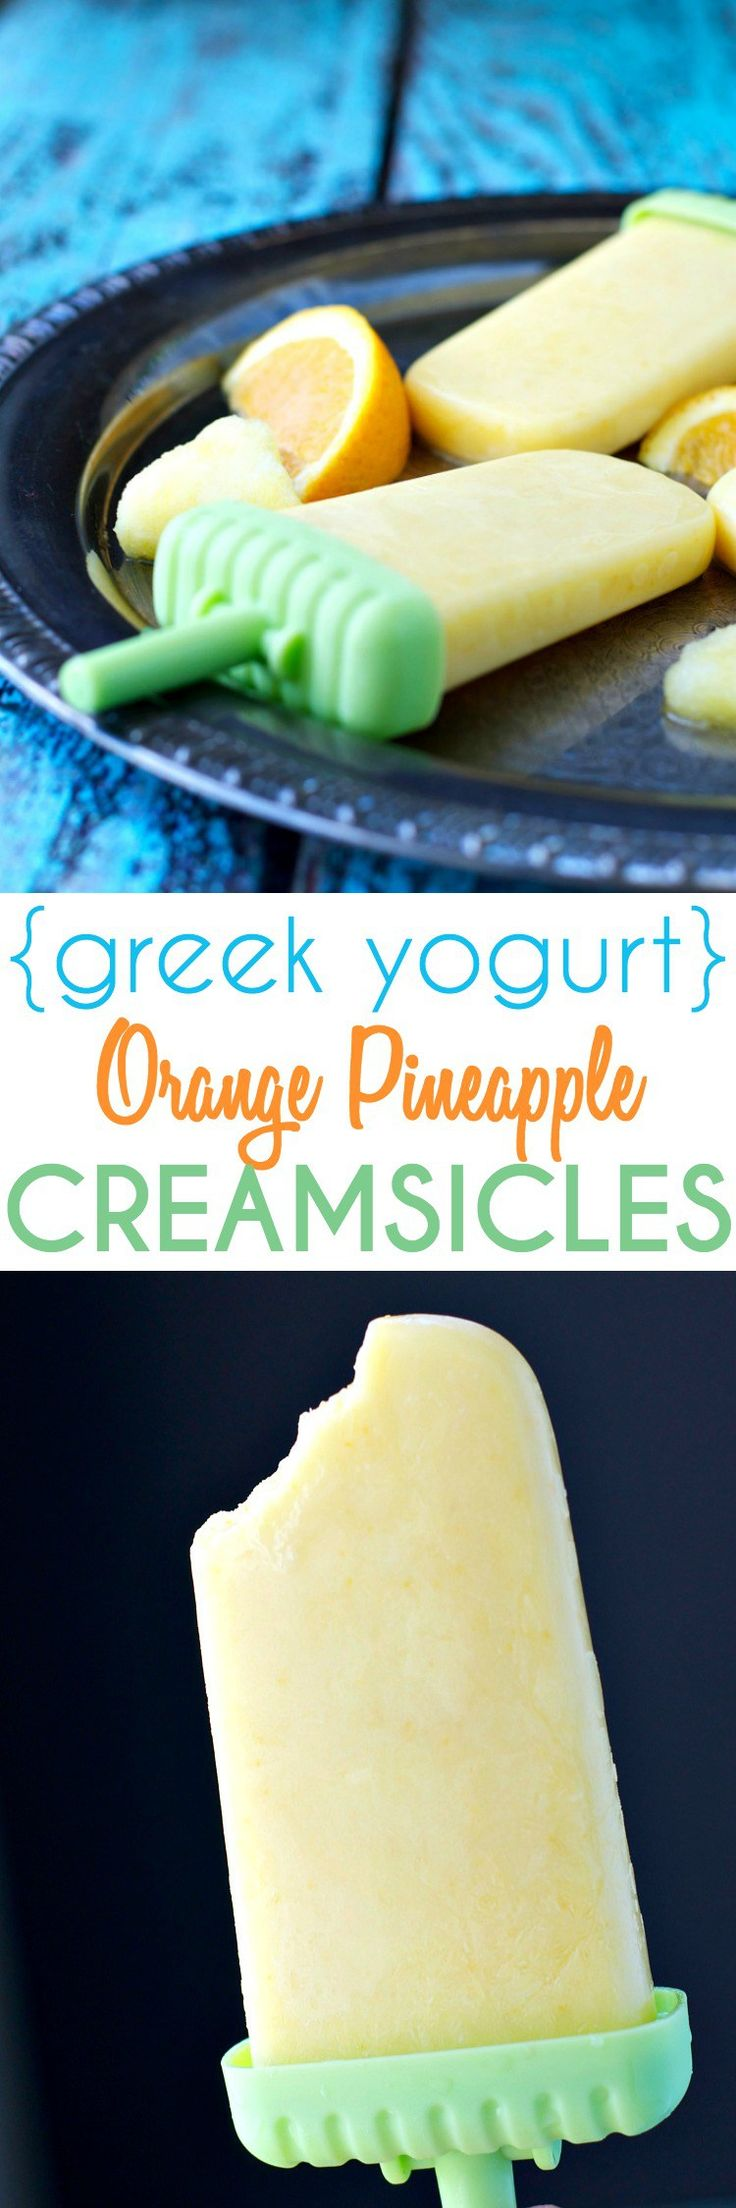 For about 40 calories you can enjoy thesecool and creamy Greek Yogurt Orange Pineapple Creamsicles that are bursting with tropical citrus flavor! And with no added sugar, the homemade popsicles are healthy enough to eat for breakfast, snack ordessert! It's no secret that my boys and I are LOVING frozen pops these days. Not surprisingly,the...Read More »